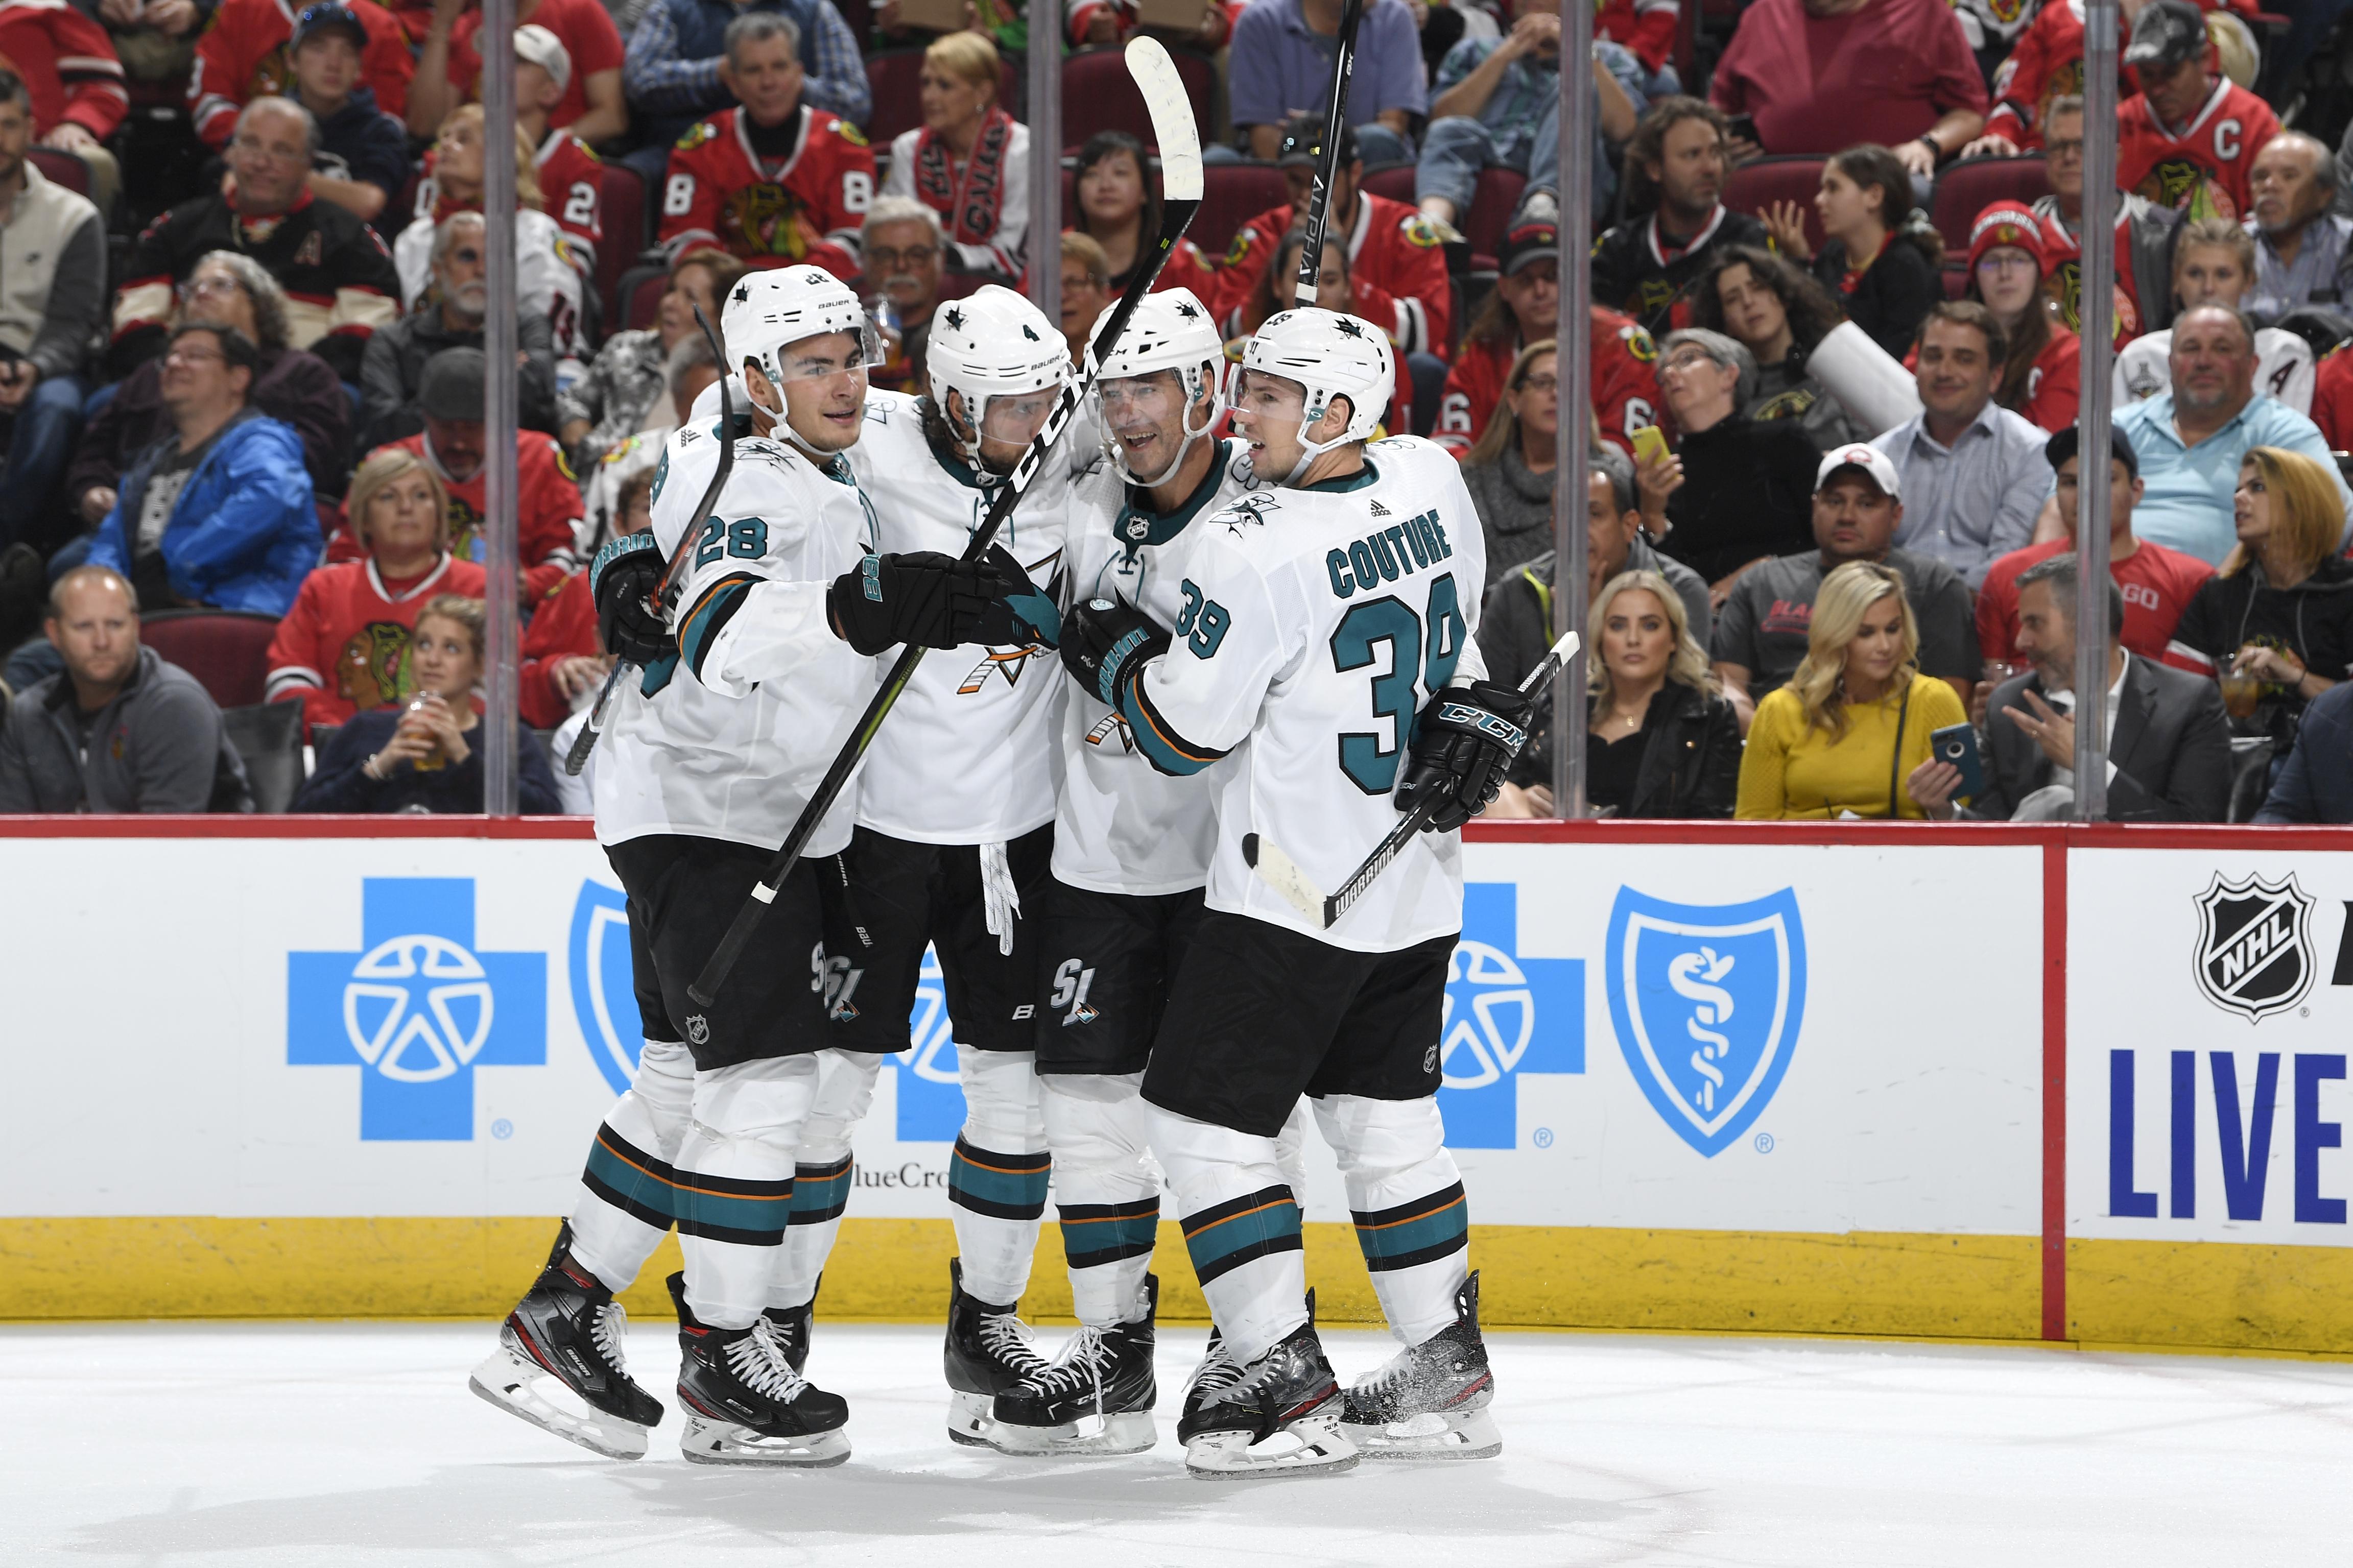 Timo Meier #28, Brenden Dillon #4, Patrick Marleau #12 and Logan Couture #39 of the San Jose Sharks celebrate after scoring against the Chicago Blackhawks in the second period at the United Center on October 10, 2019 in Chicago, Illinois.